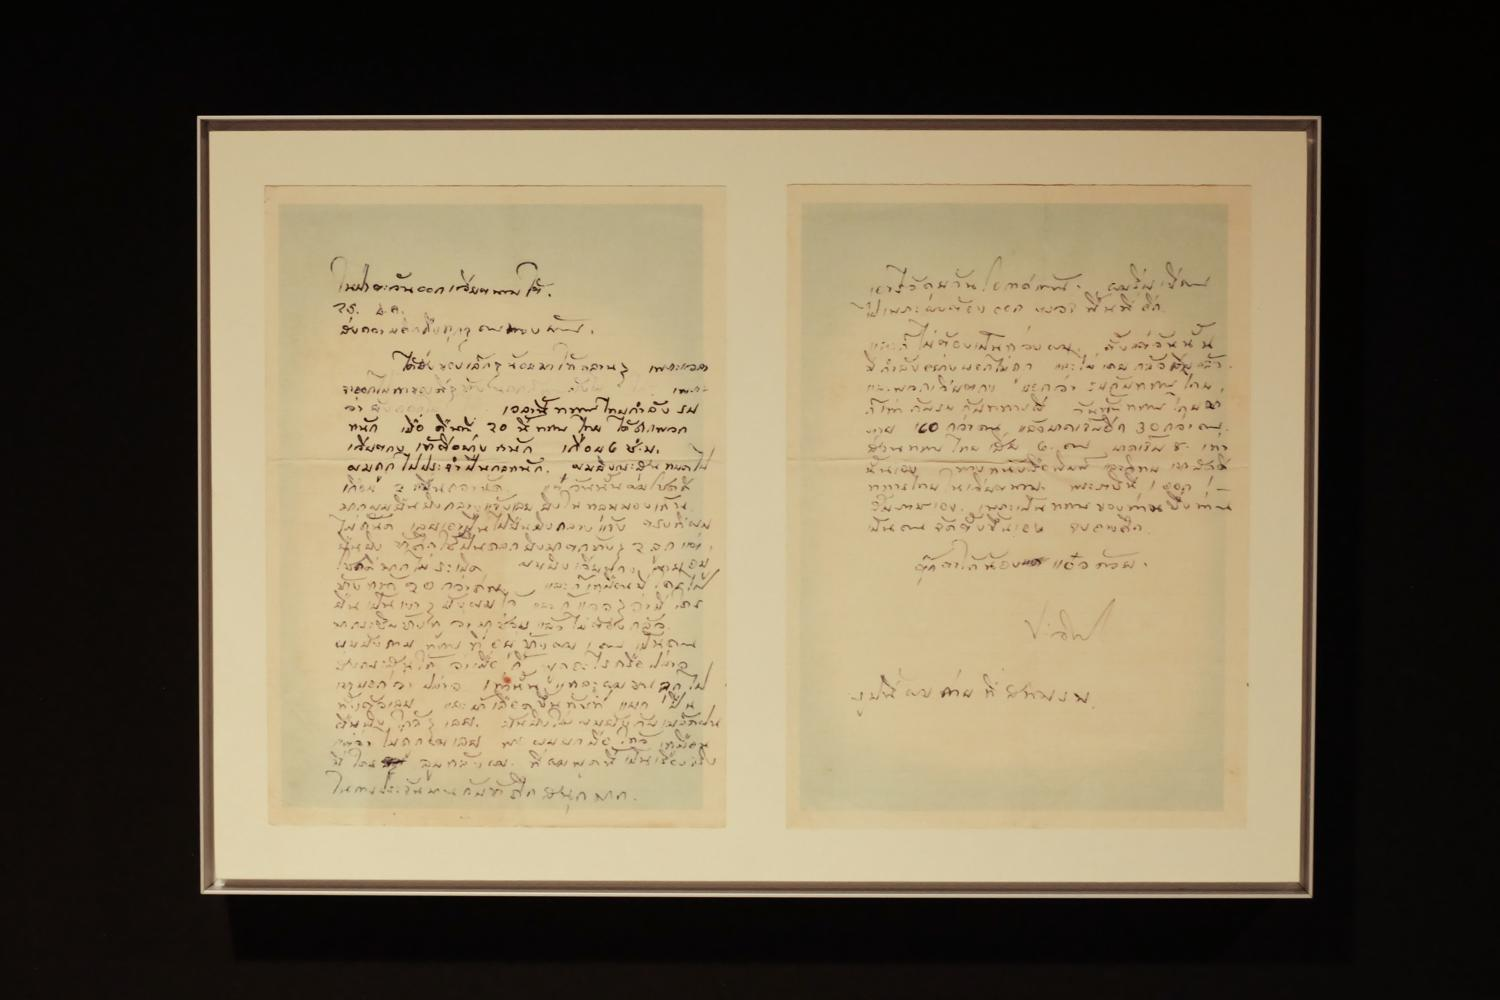 The melancholic reality of wartime life can be felt through a small collection of handwritten, yellowed letters written by and to Thai soldiers fighting in the Vietnam War. Nova Contemporary